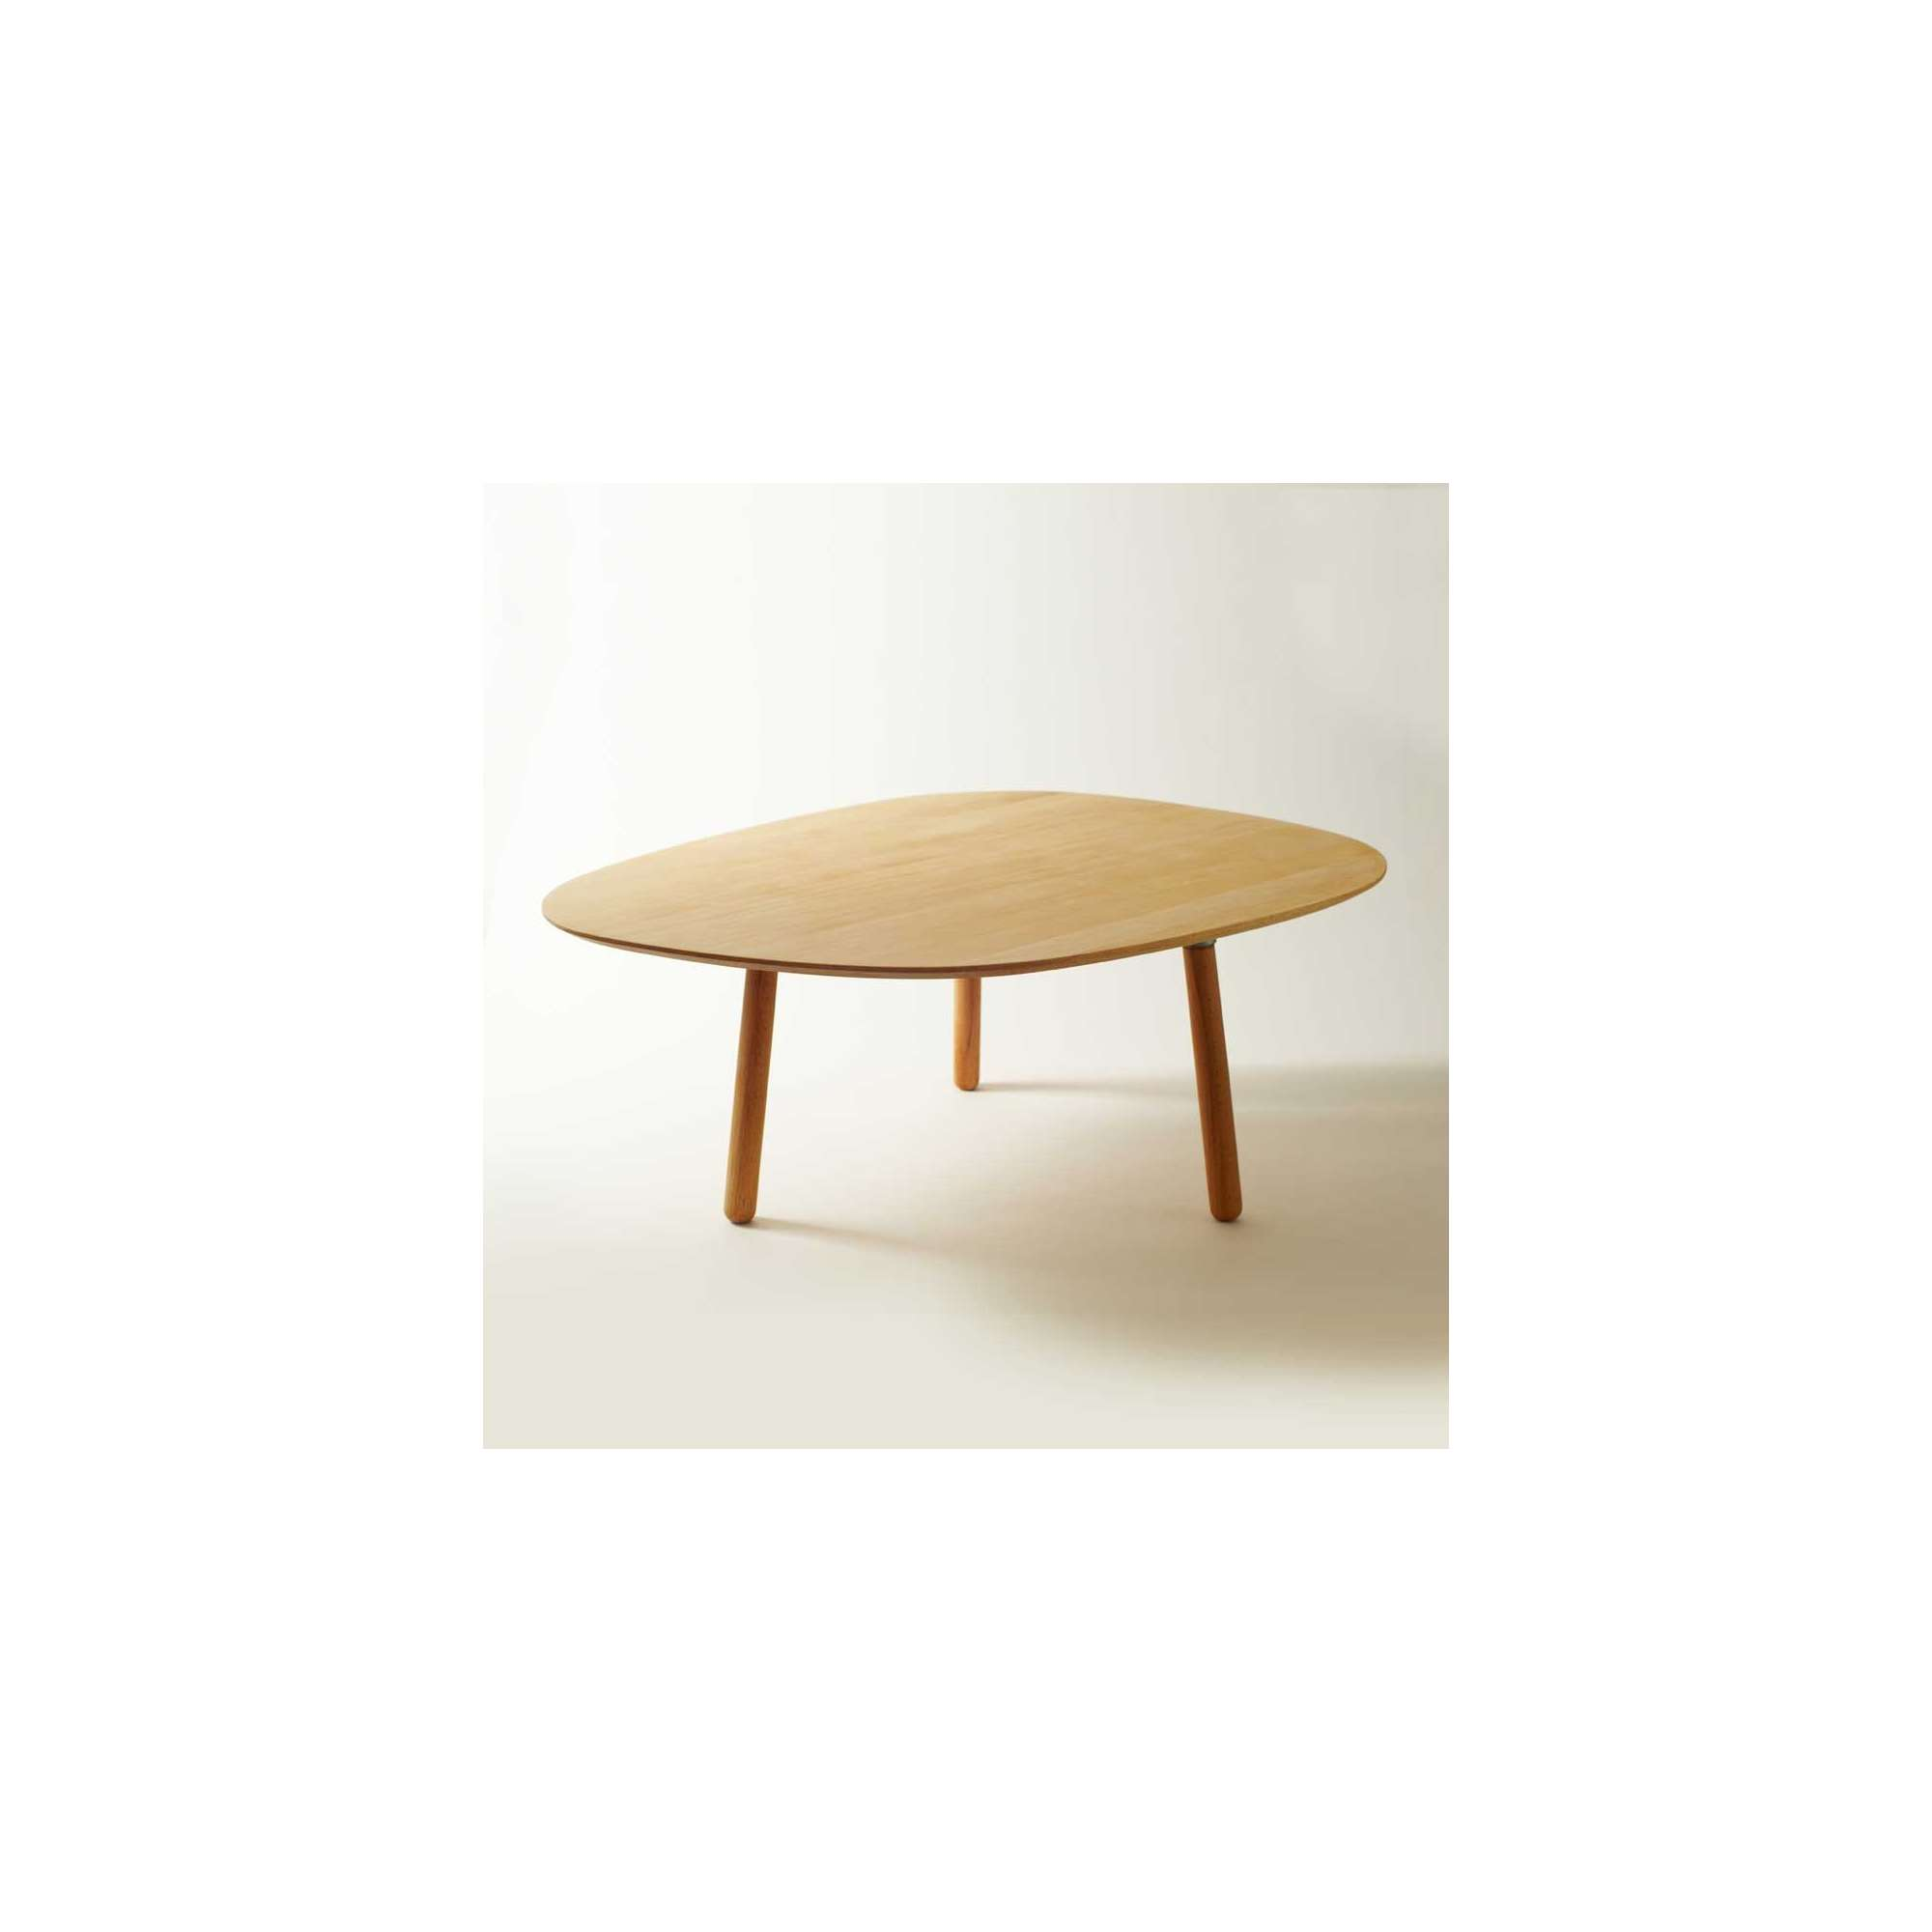 Grande Table Basse Bois > Grande Table Basse Bois Maison Design Wiblia com